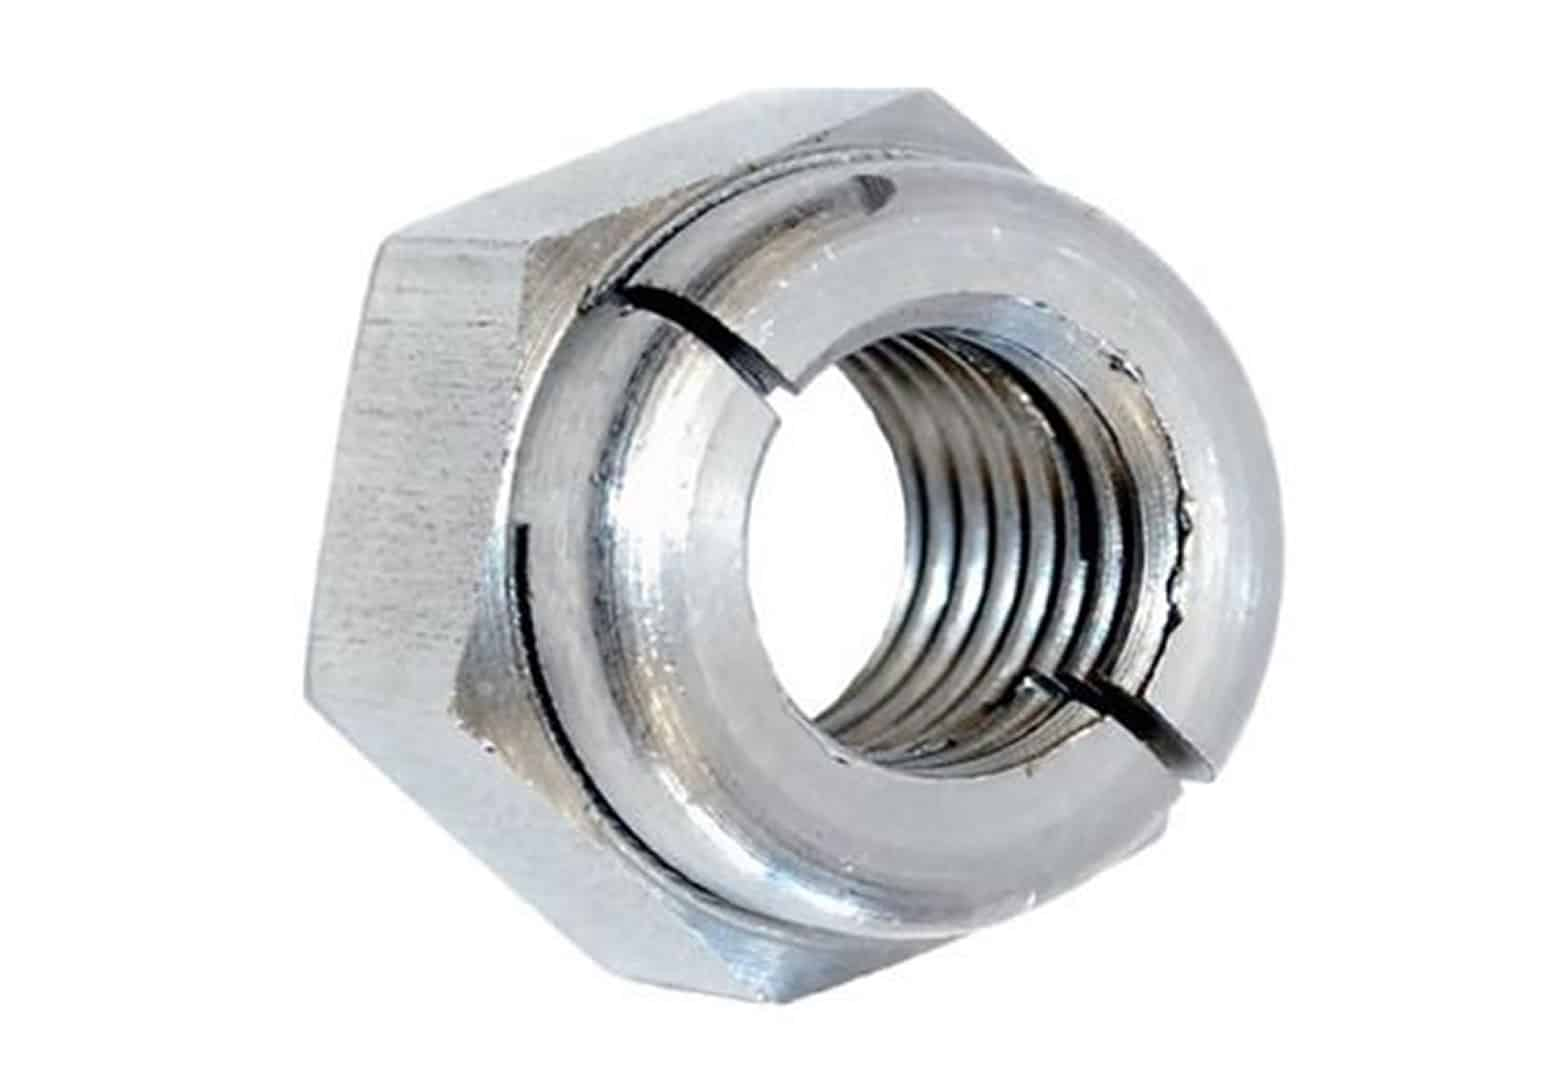 Self Locking Nut >> Self Locking Nuts - Stover - Metric | TFC